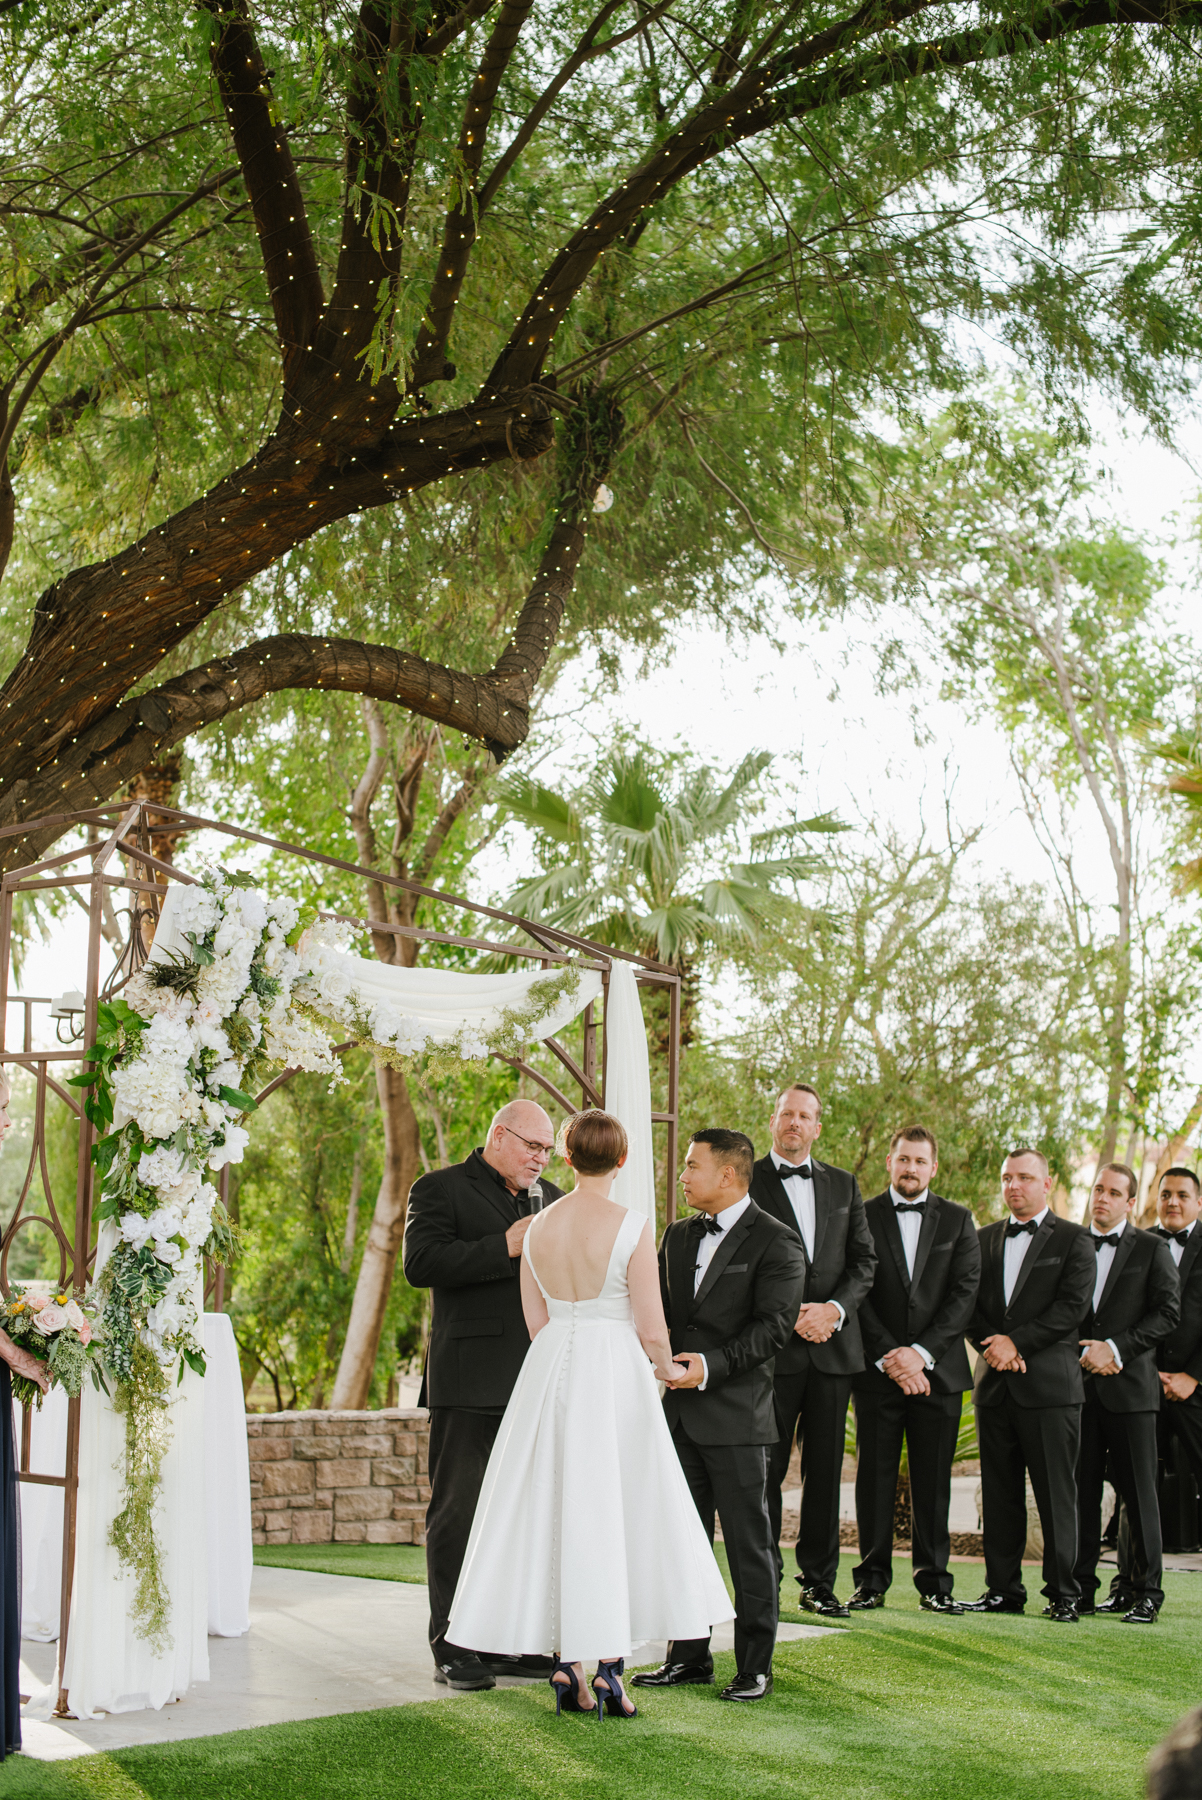 Secret Garden Event Center Wedding - Meredith Amadee Photography-94.jpg